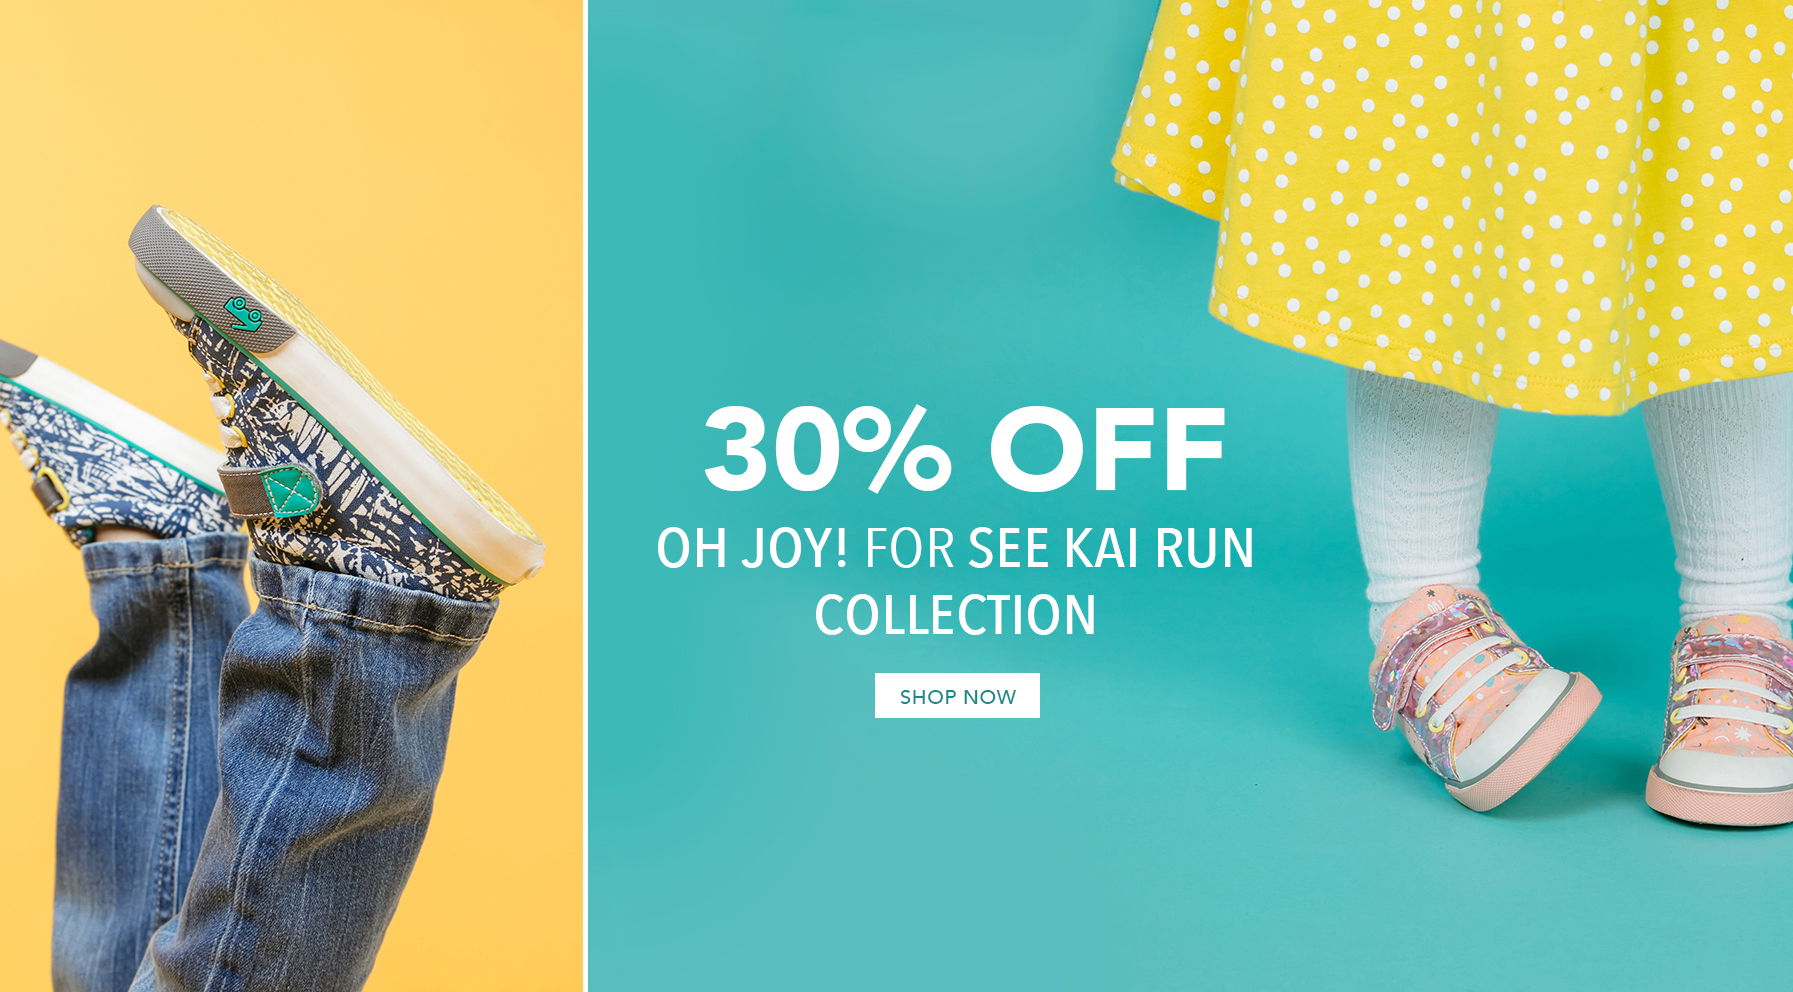 30% off Oh Joy! for See Kai Run collection. Shop Now.